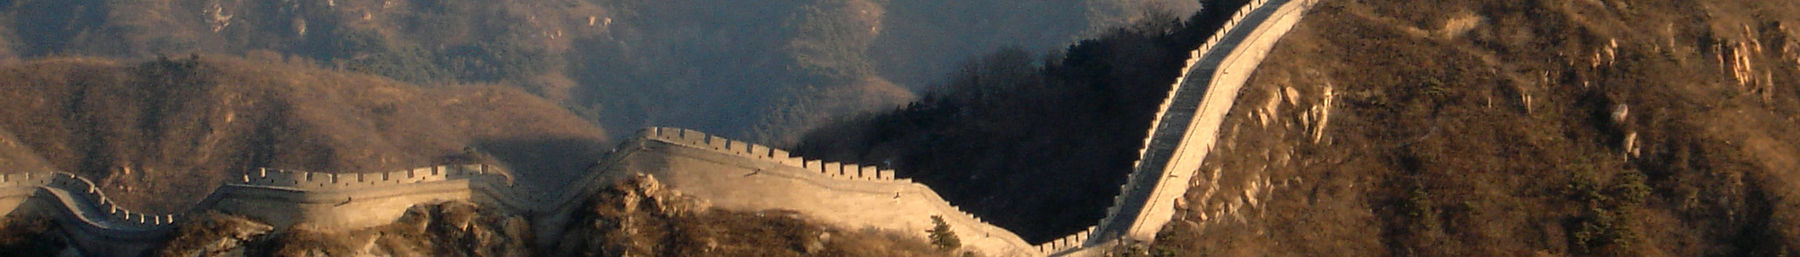 Great Wall banner.jpg